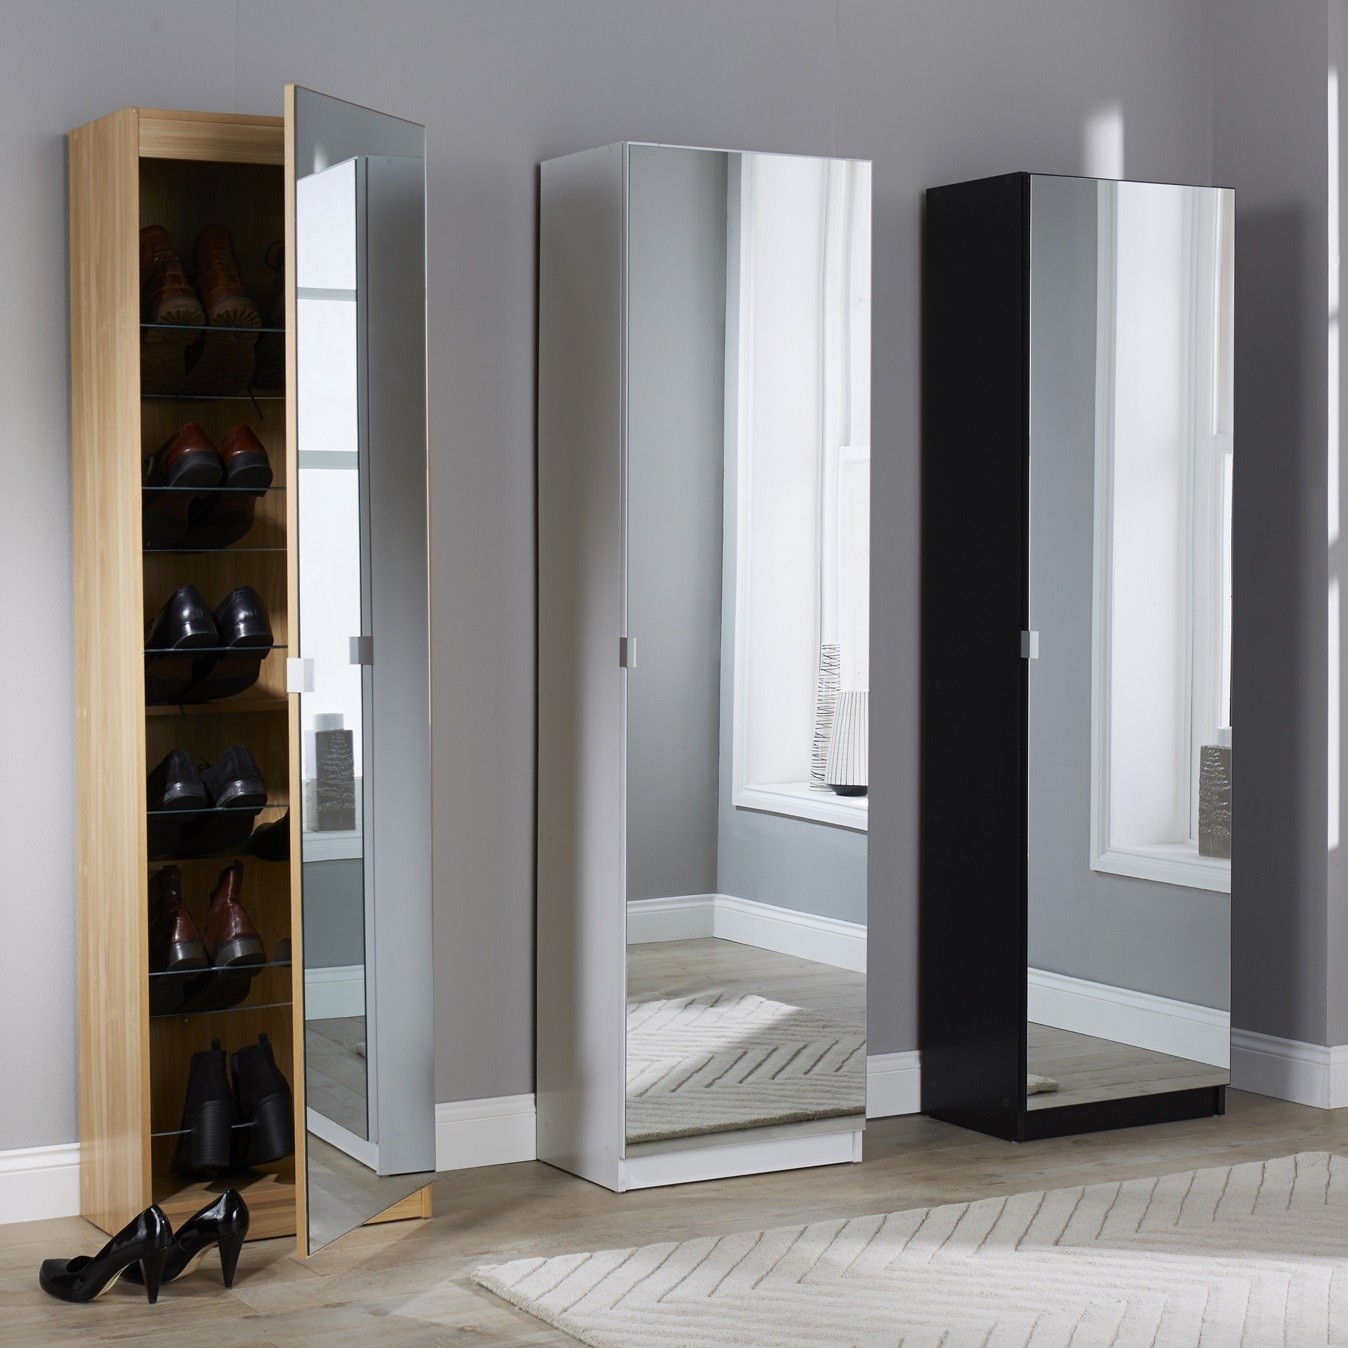 Permalink to Storage Cabinet With Mirror Door